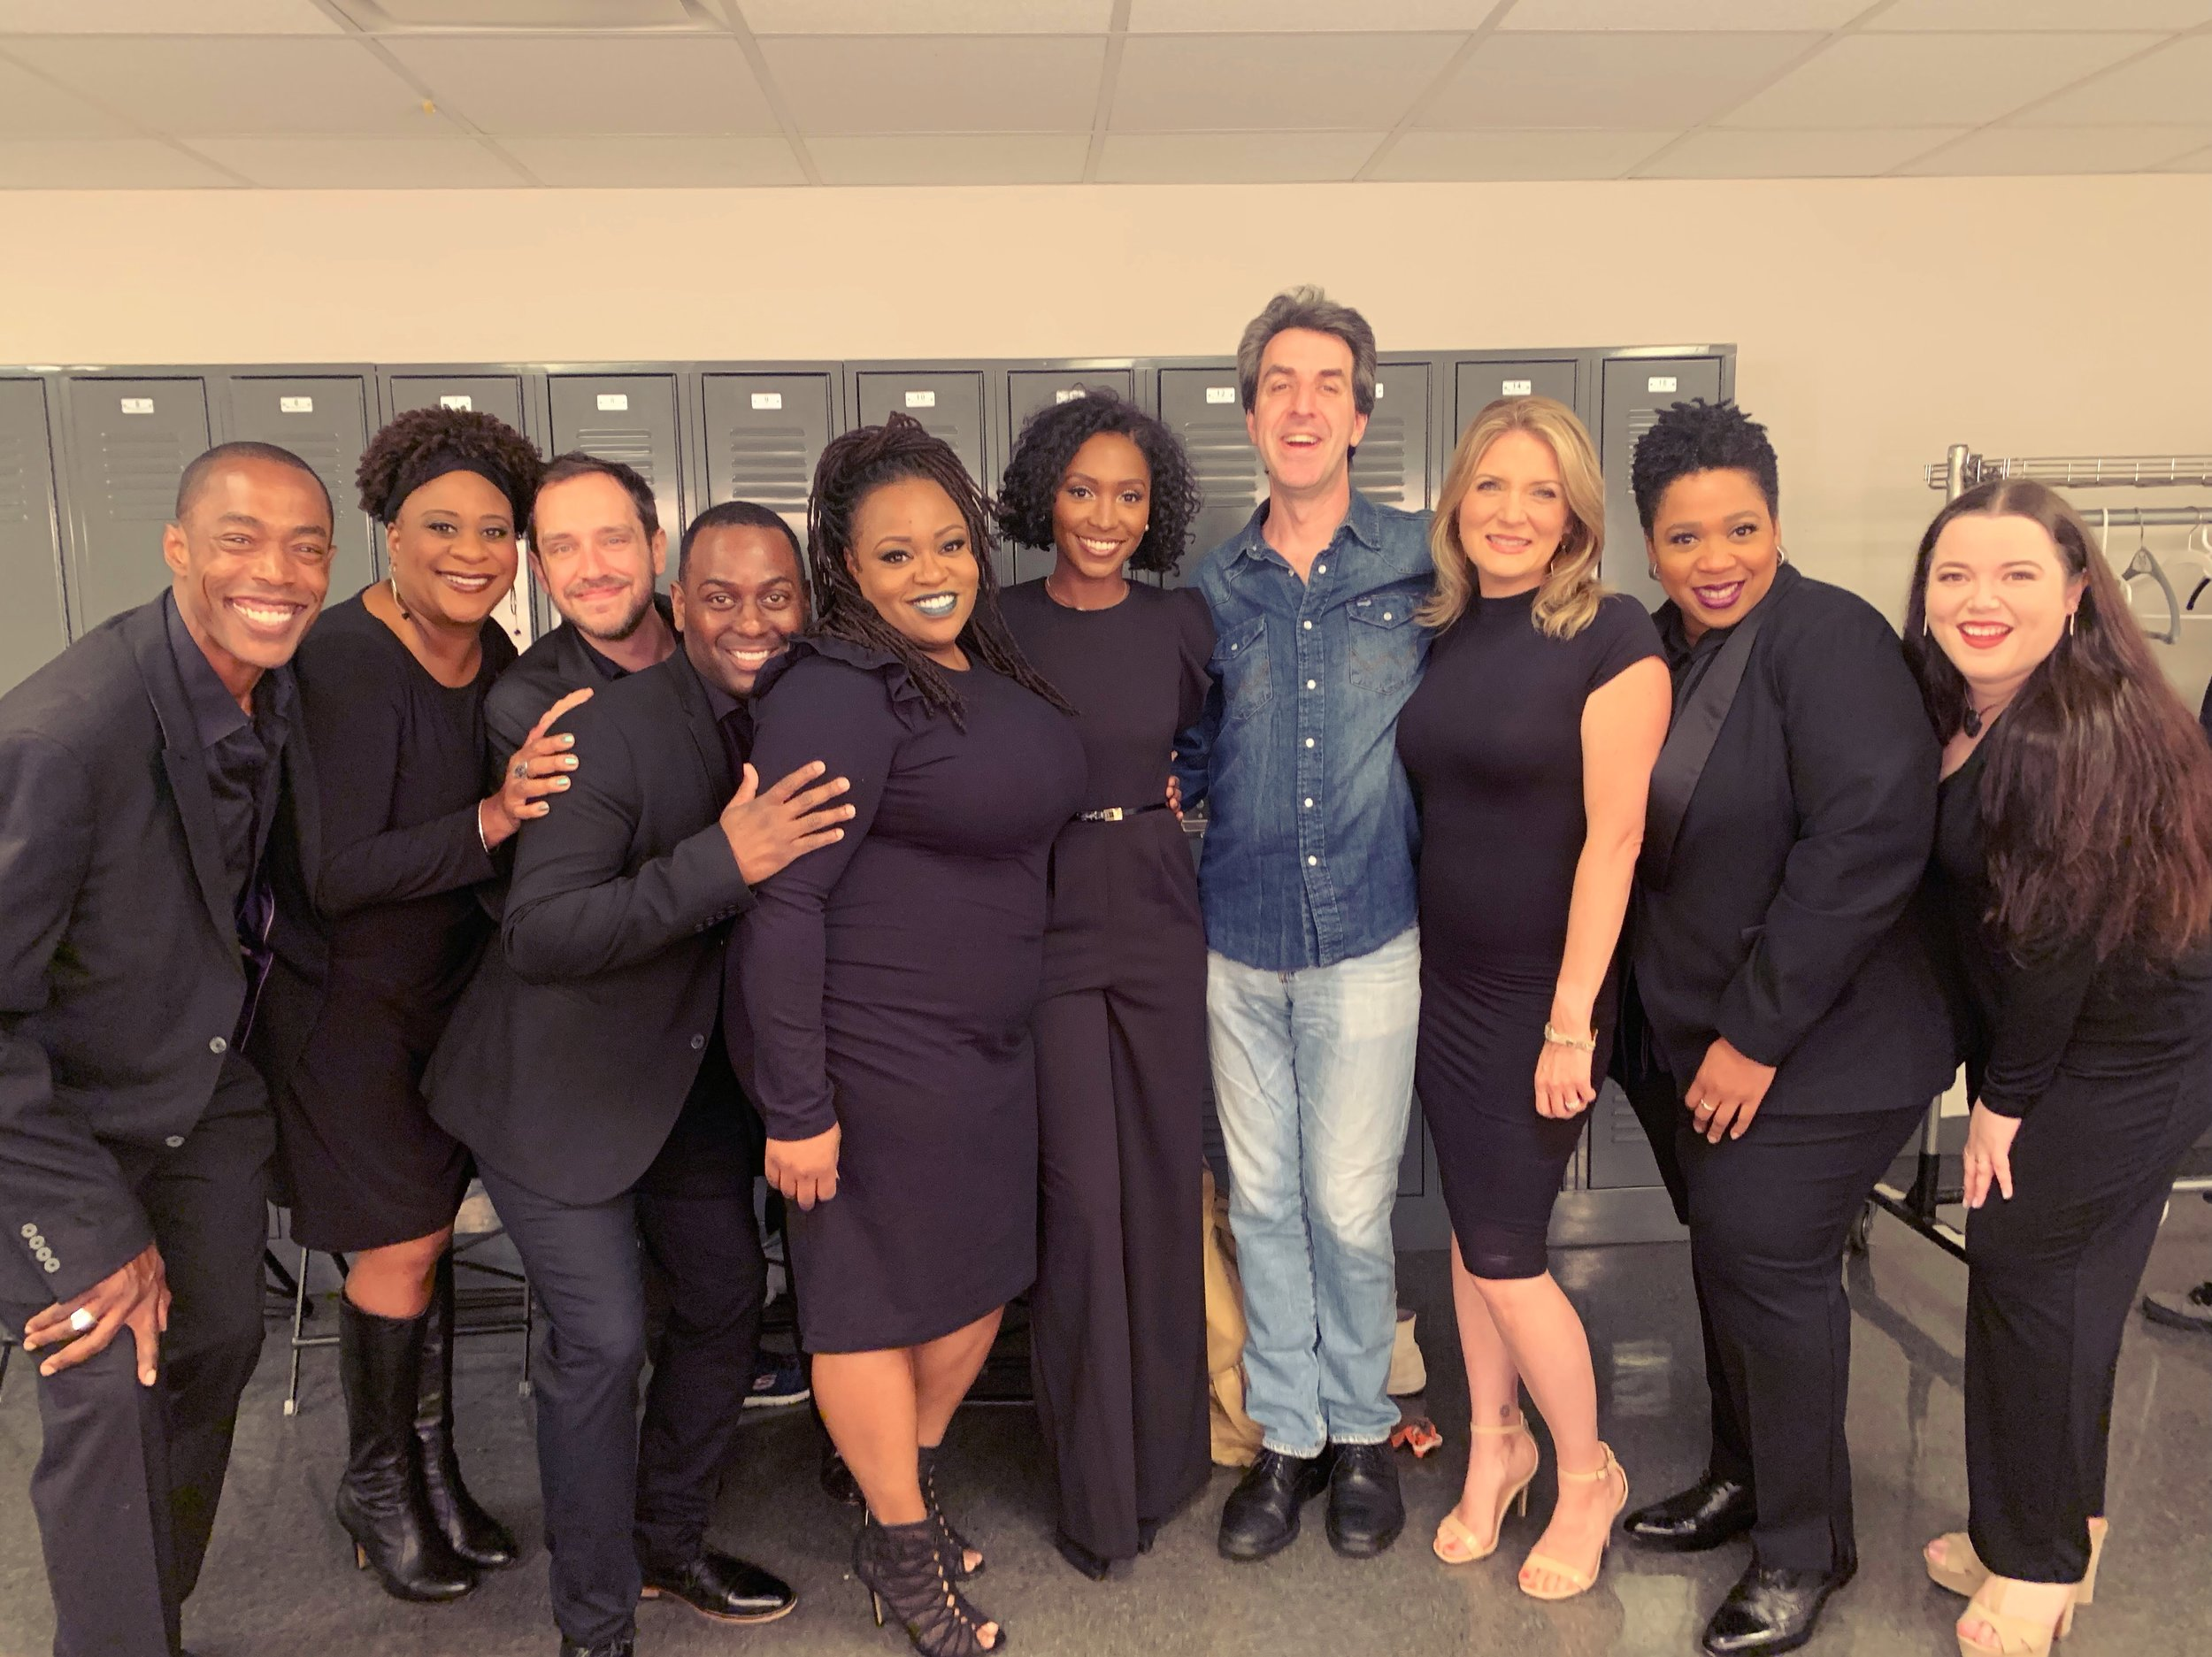 Backstage at Lincoln Center with Jason Robert Brown